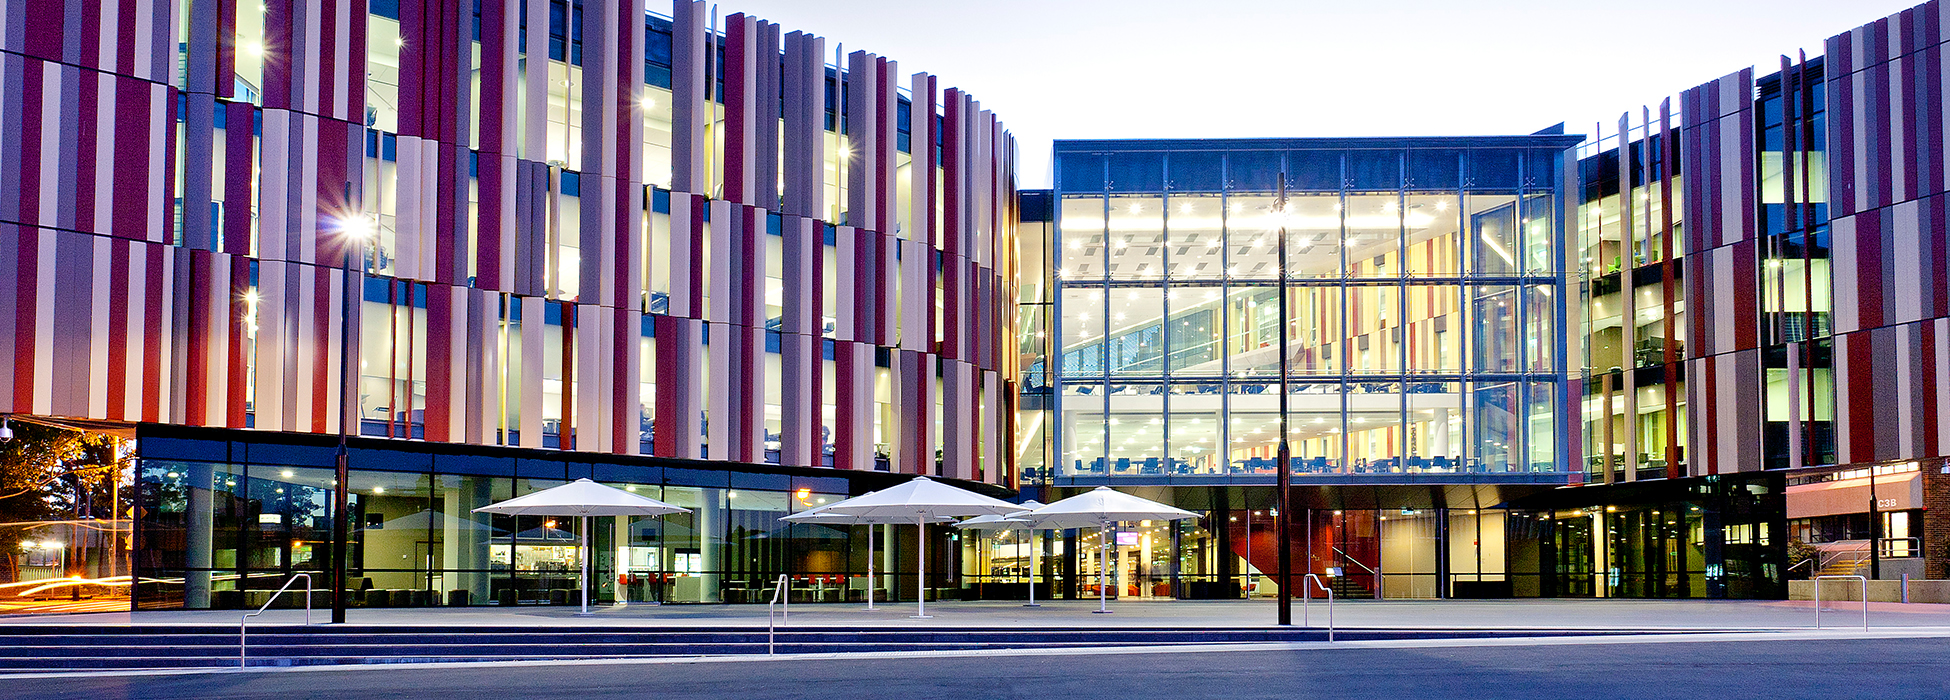 https://www.timeshighereducation.com/sites/default/files/institution/header_image/macquarie-university-building.jpg